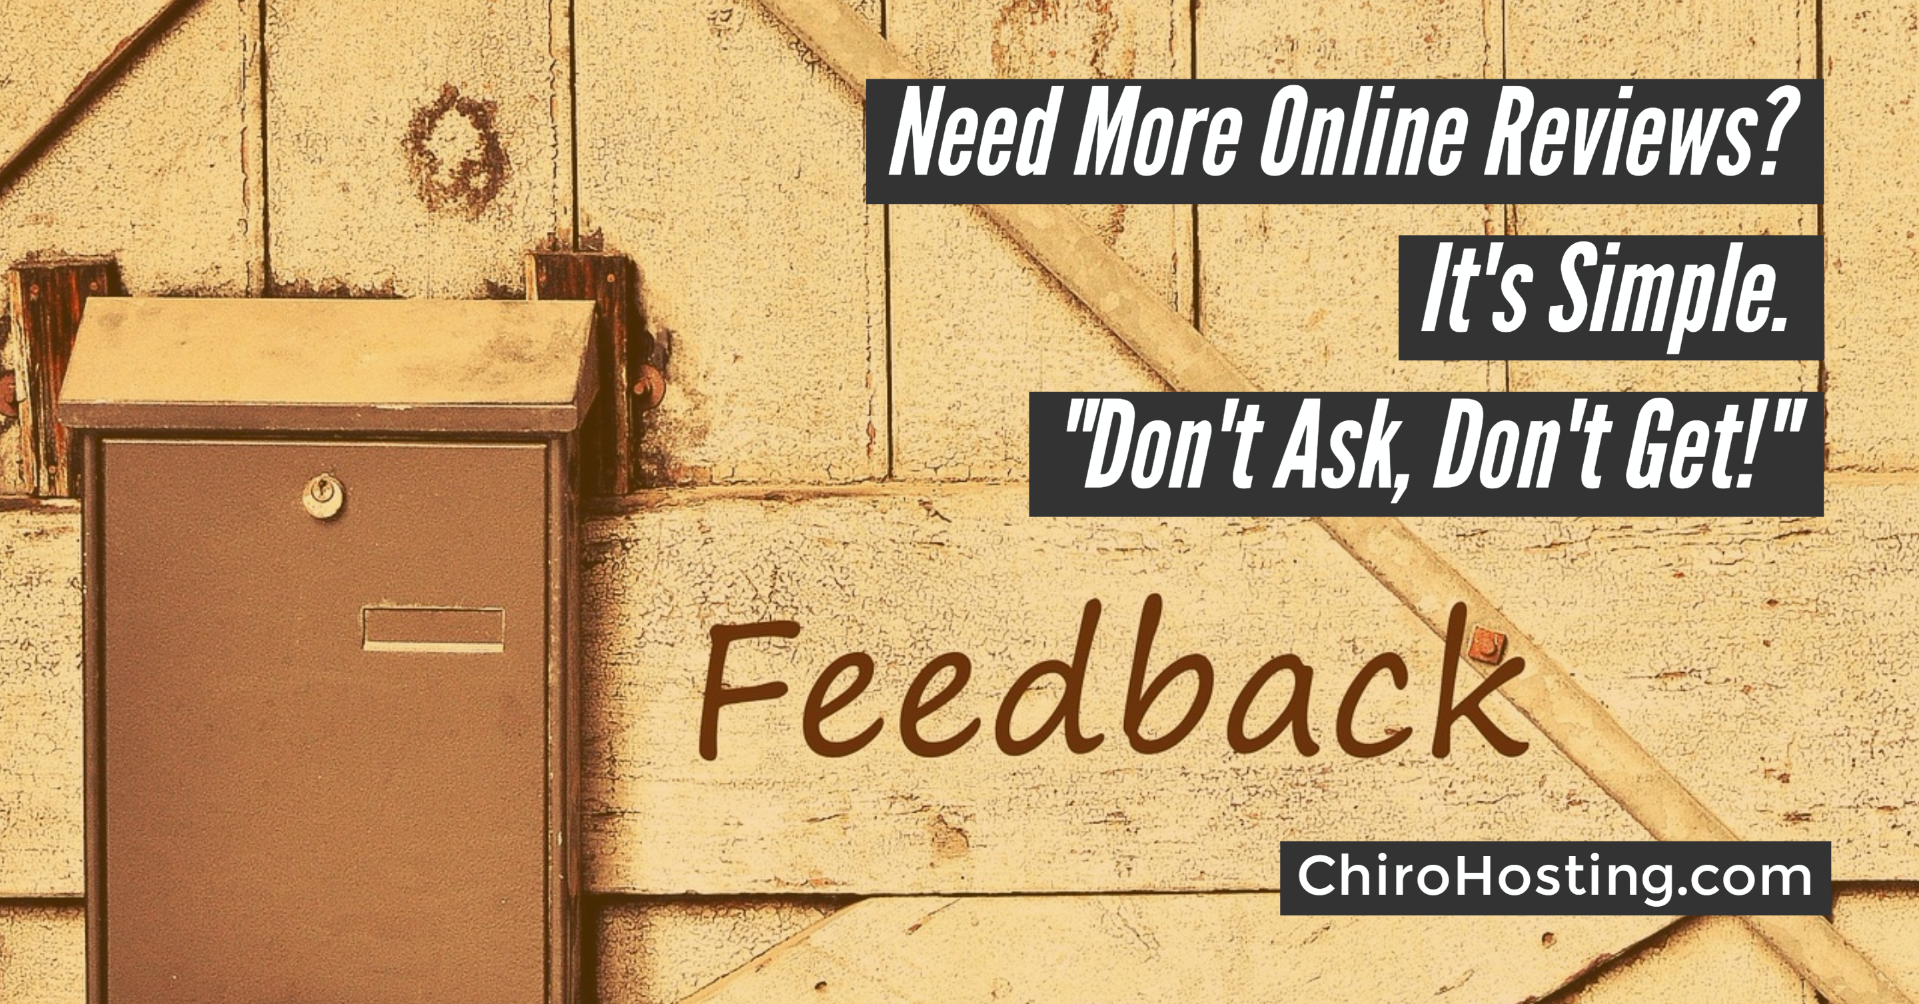 Need More Chiropractic Online Reviews? The Top 10 Tips are Right Here! Hint: